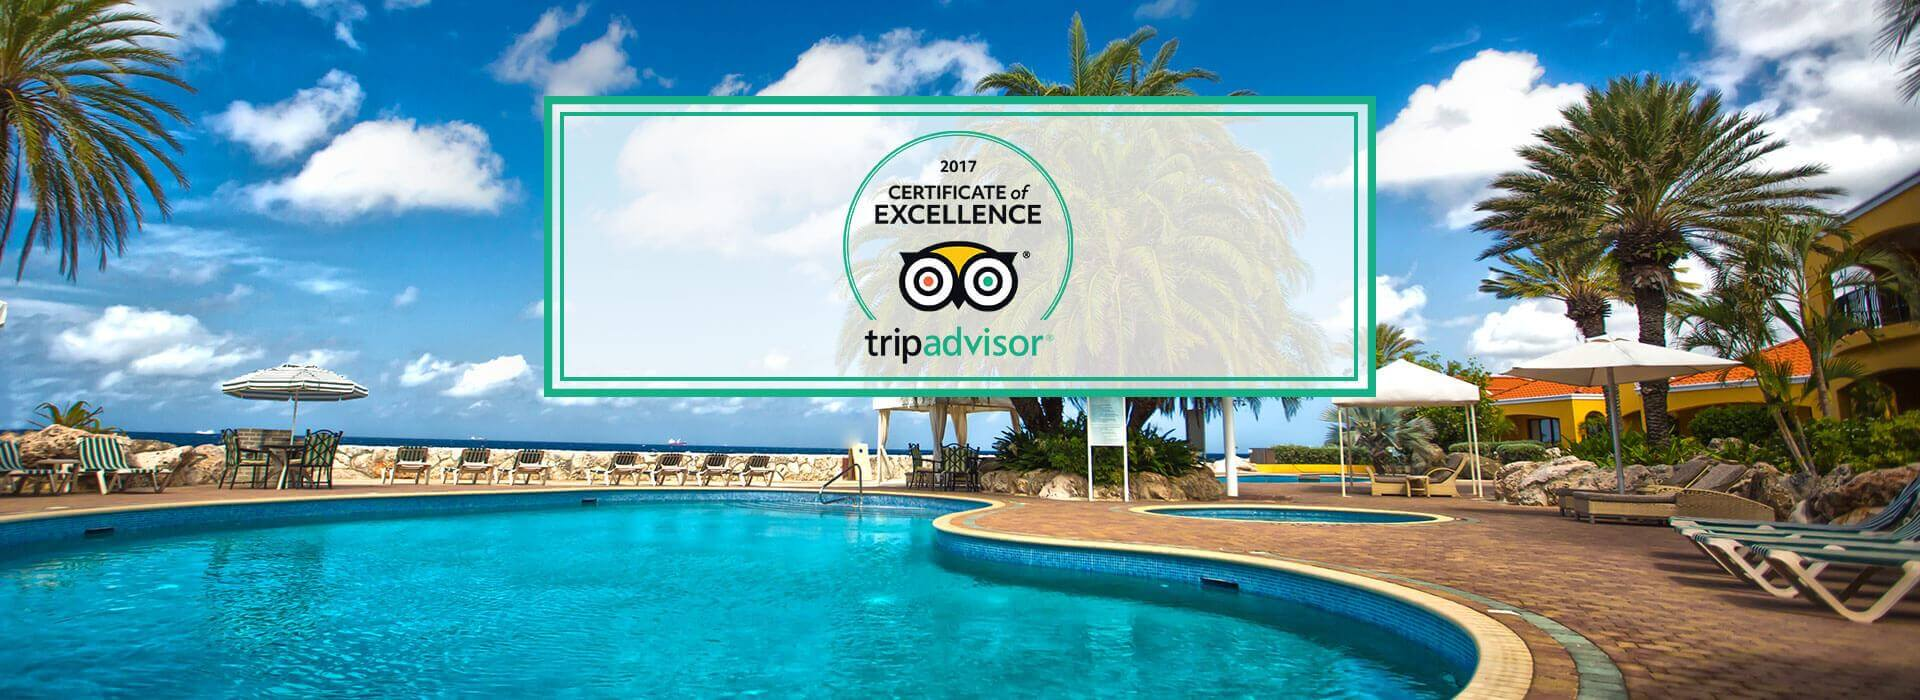 Resort to enjoy Curacao vacations with all family